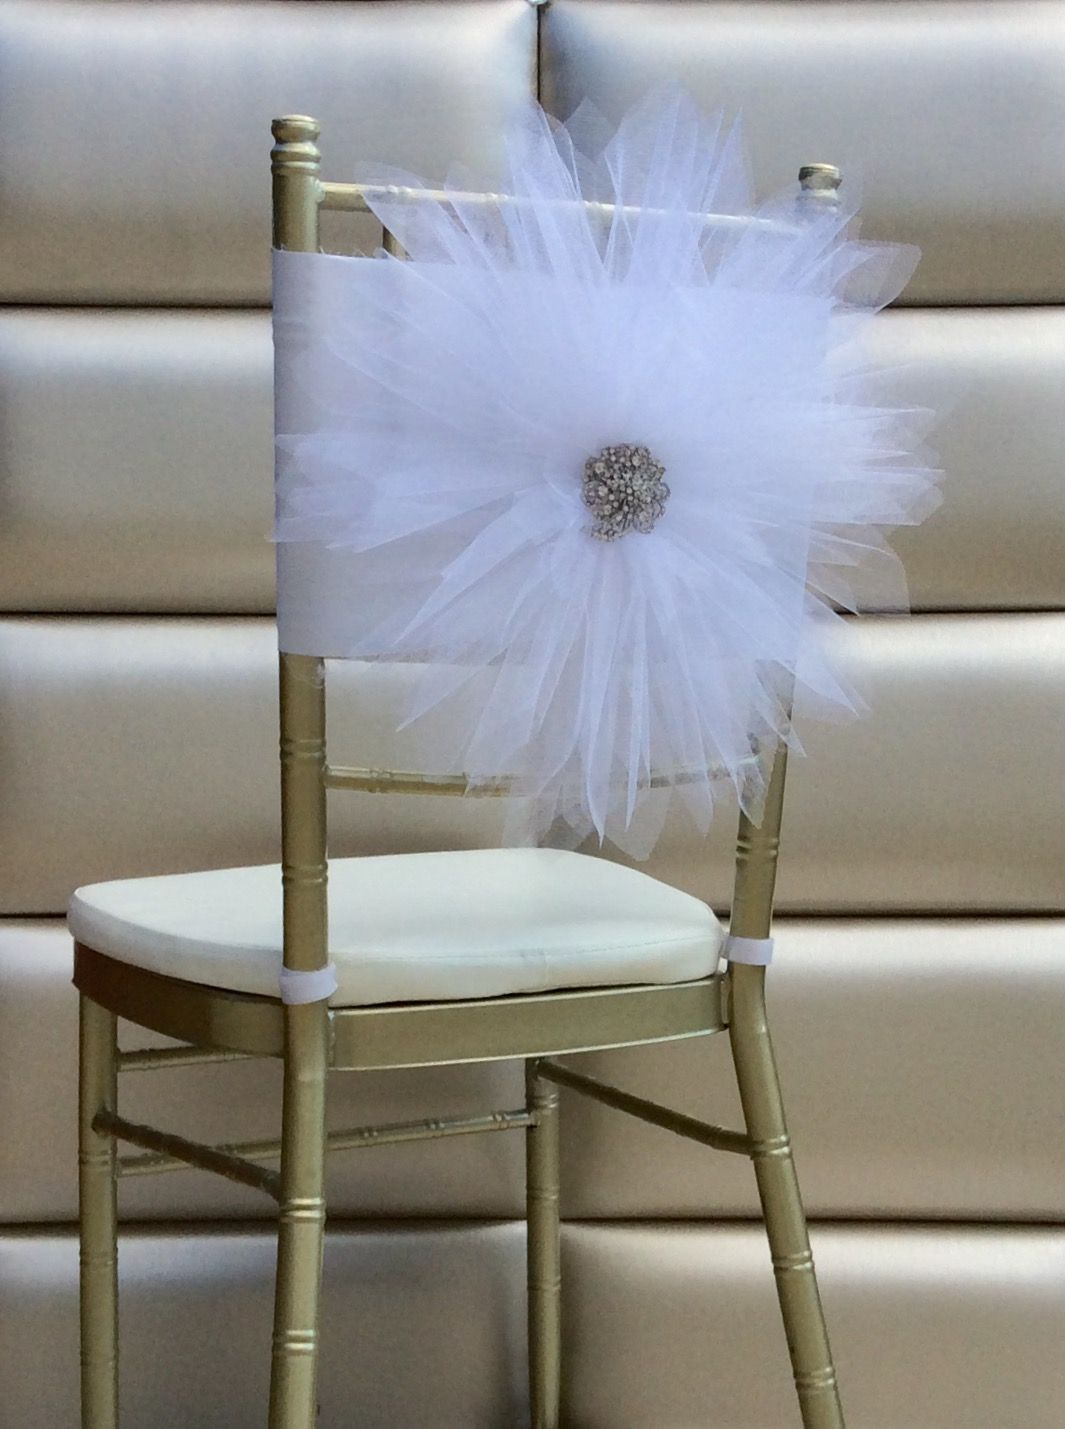 Buy or hire chair covers for wedding or special events